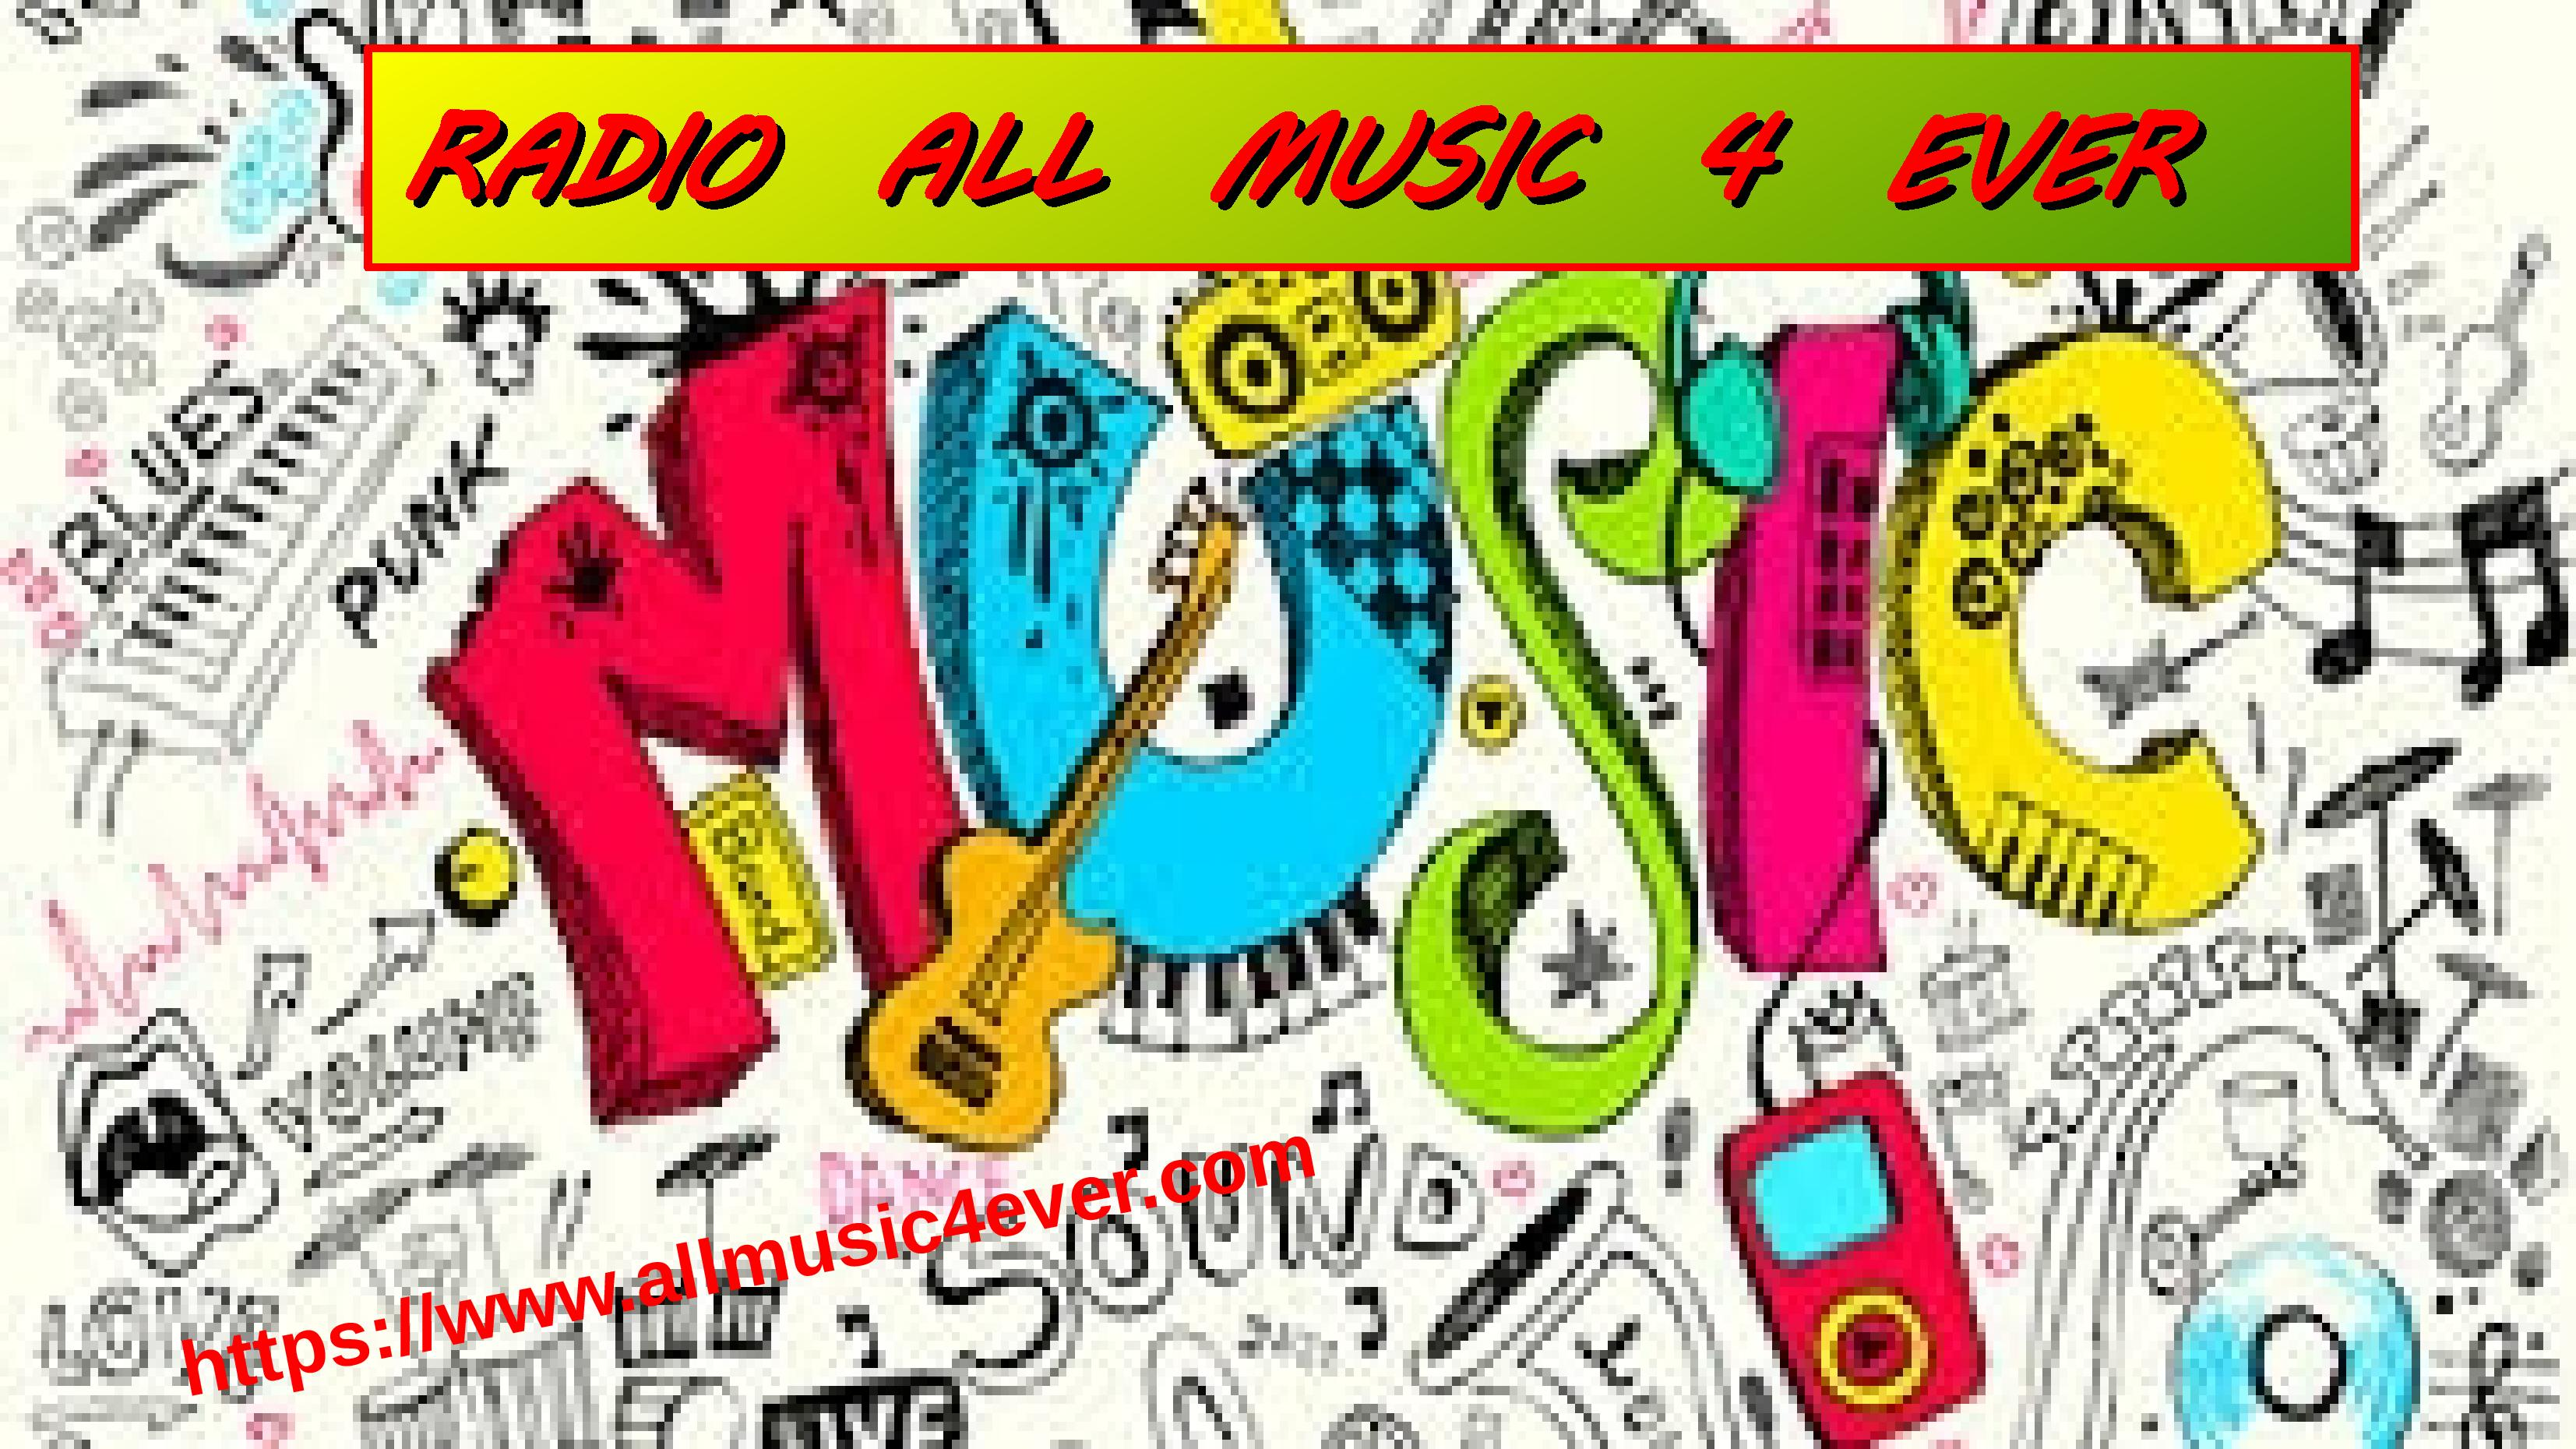 LOGO ALLMUSIC4EVER-page-001jpg